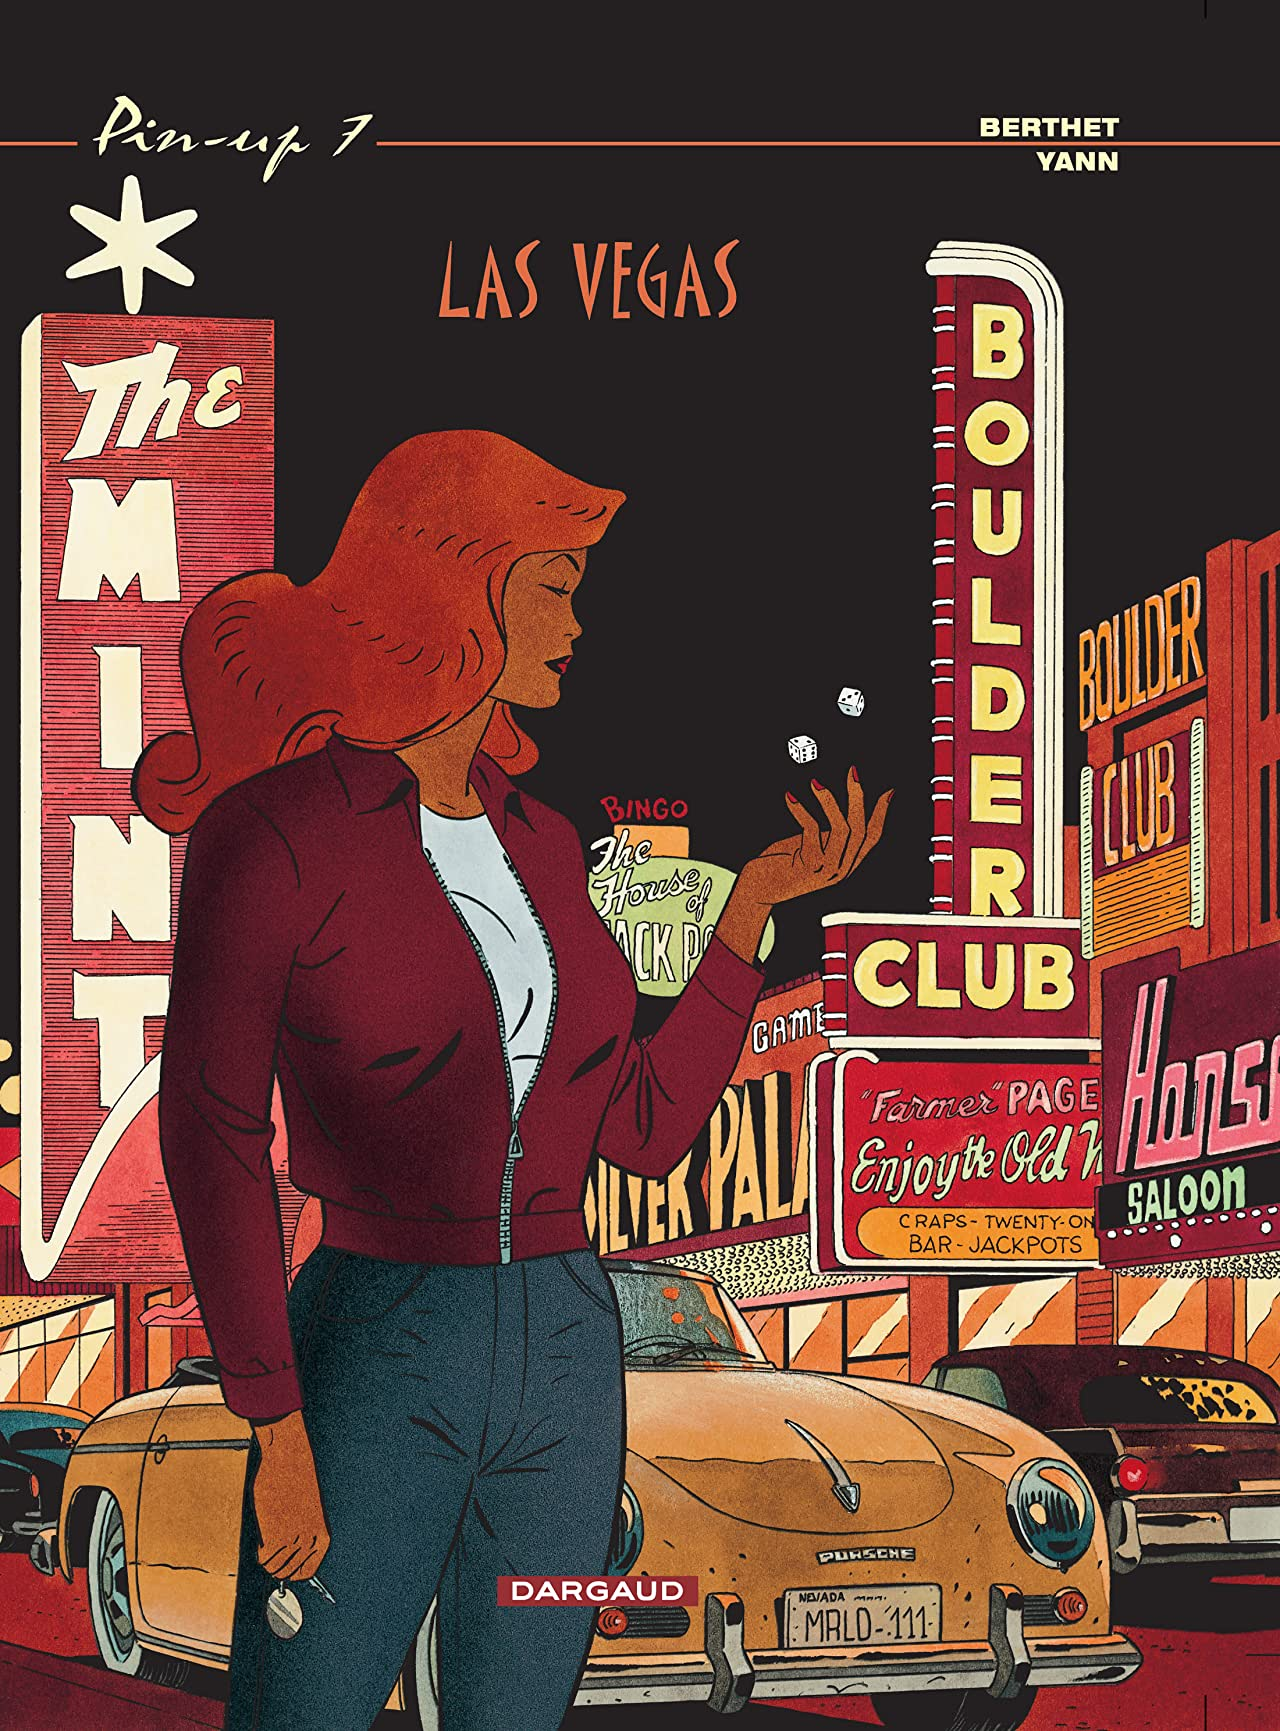 Pin-up Vol. 7: Las Vegas